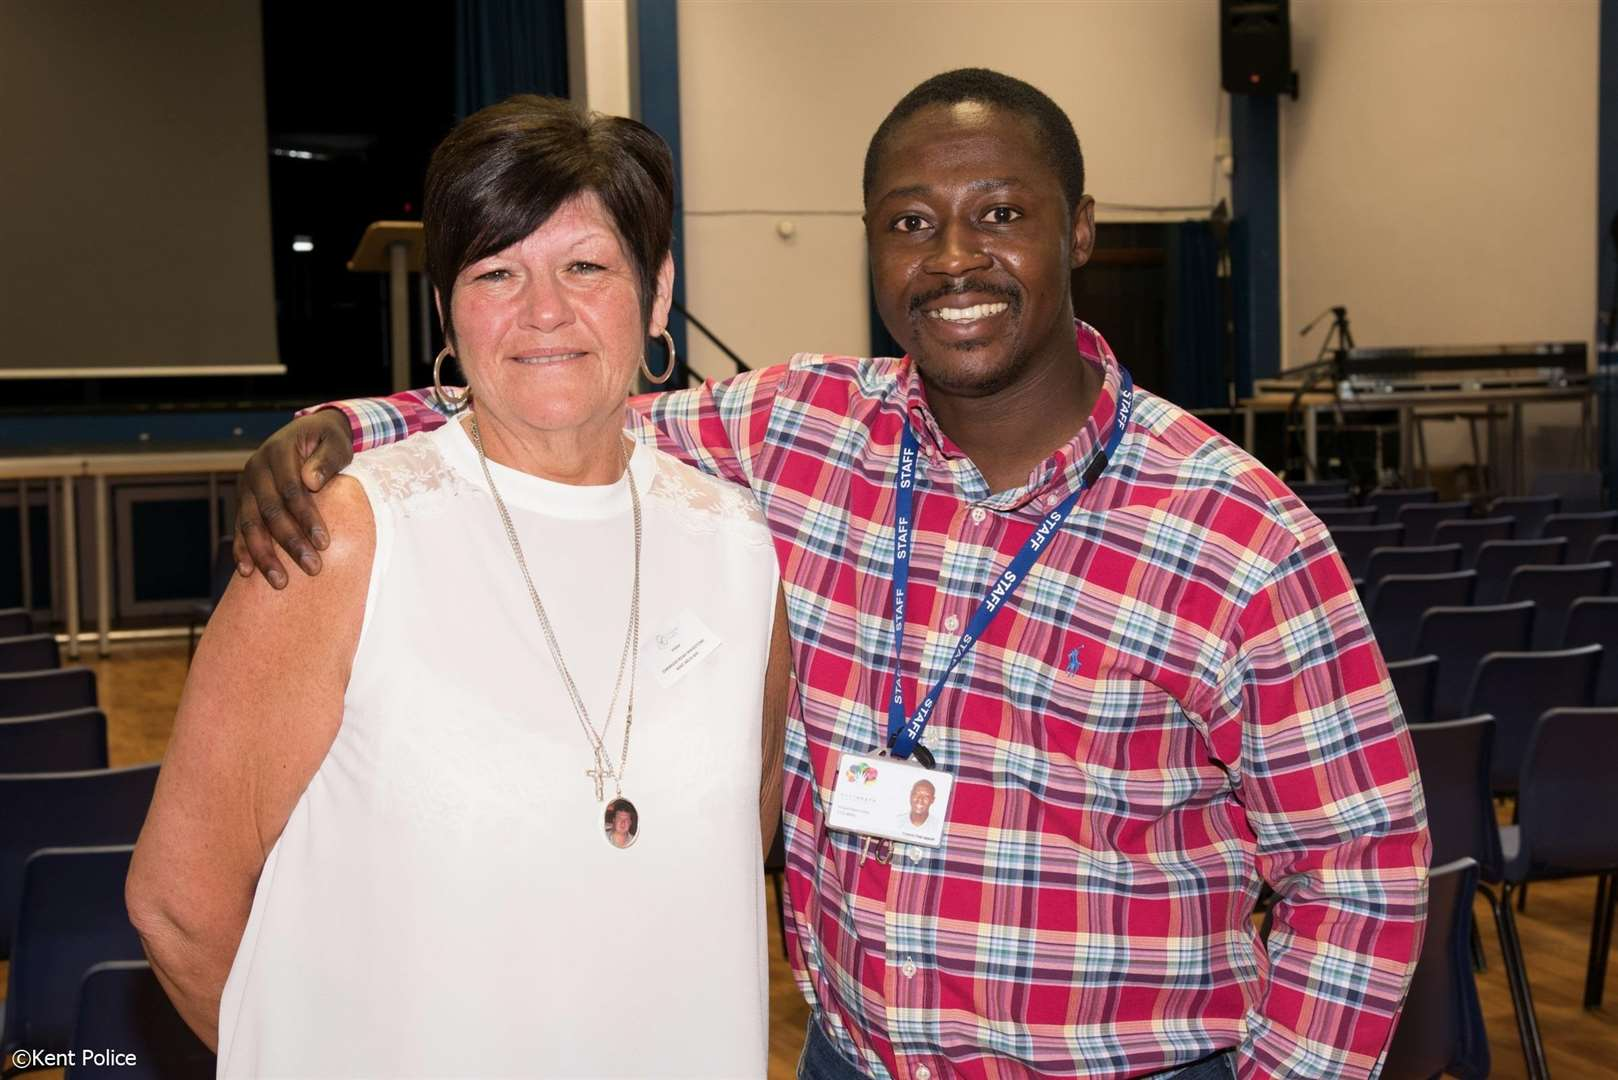 Glenda Crittenden, whose son Tom was stabbed to death, with Francis Osei-Appiah